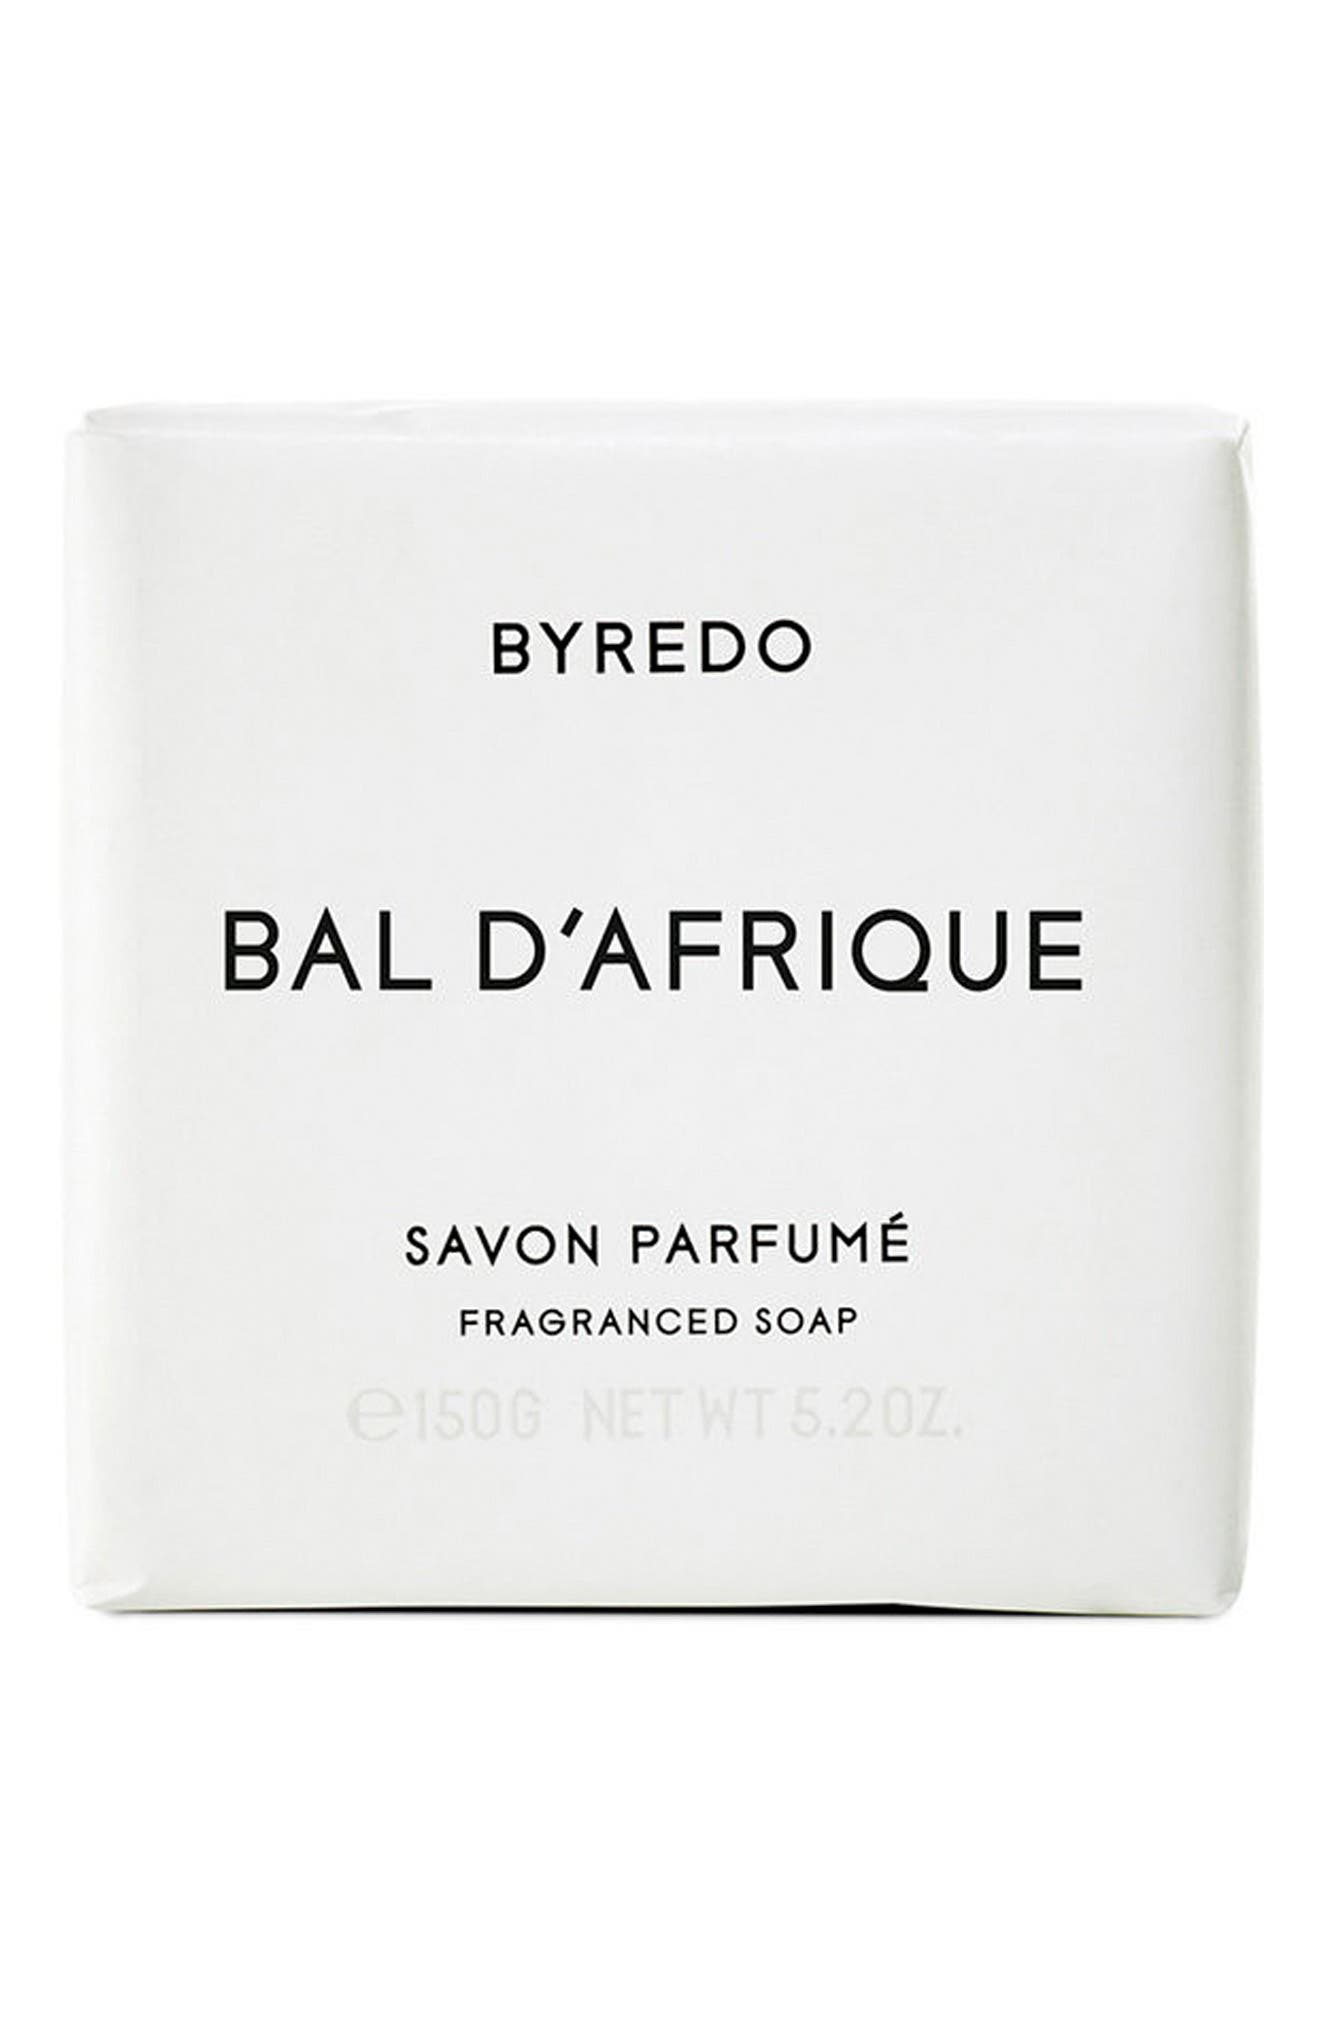 Bal d'Afrique Soap Bar,                             Main thumbnail 1, color,                             000